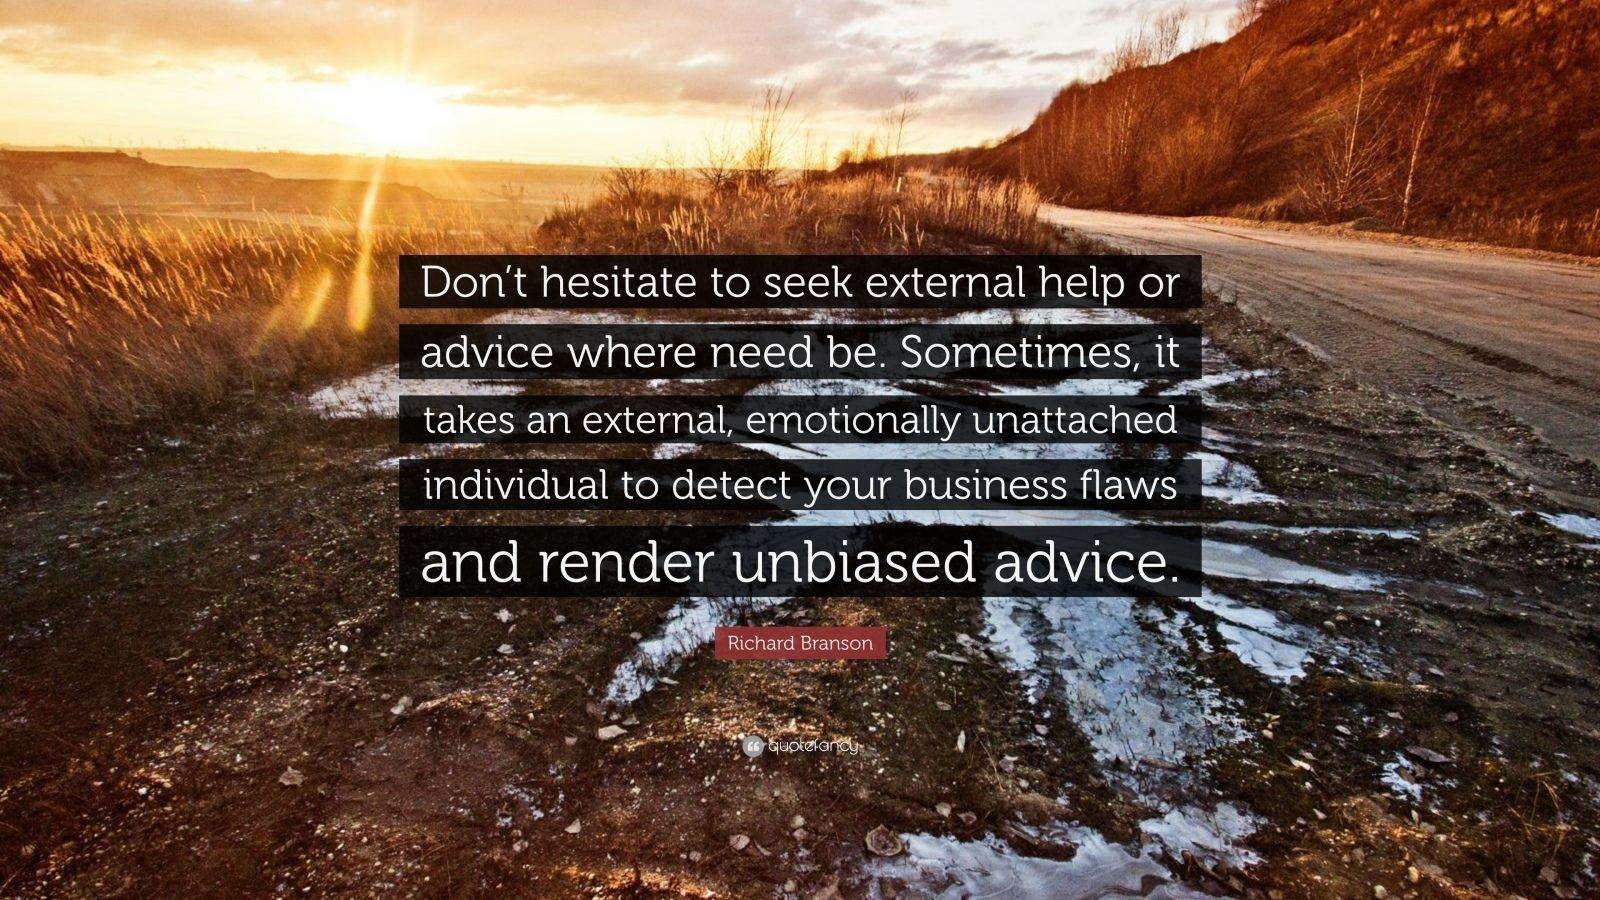 """Richard Branson Quote: """"Don't hesitate to seek external help or advice where need be. Sometimes, it takes an external, emotionally unattached individual to detect your business flaws and render unbiased advice."""""""